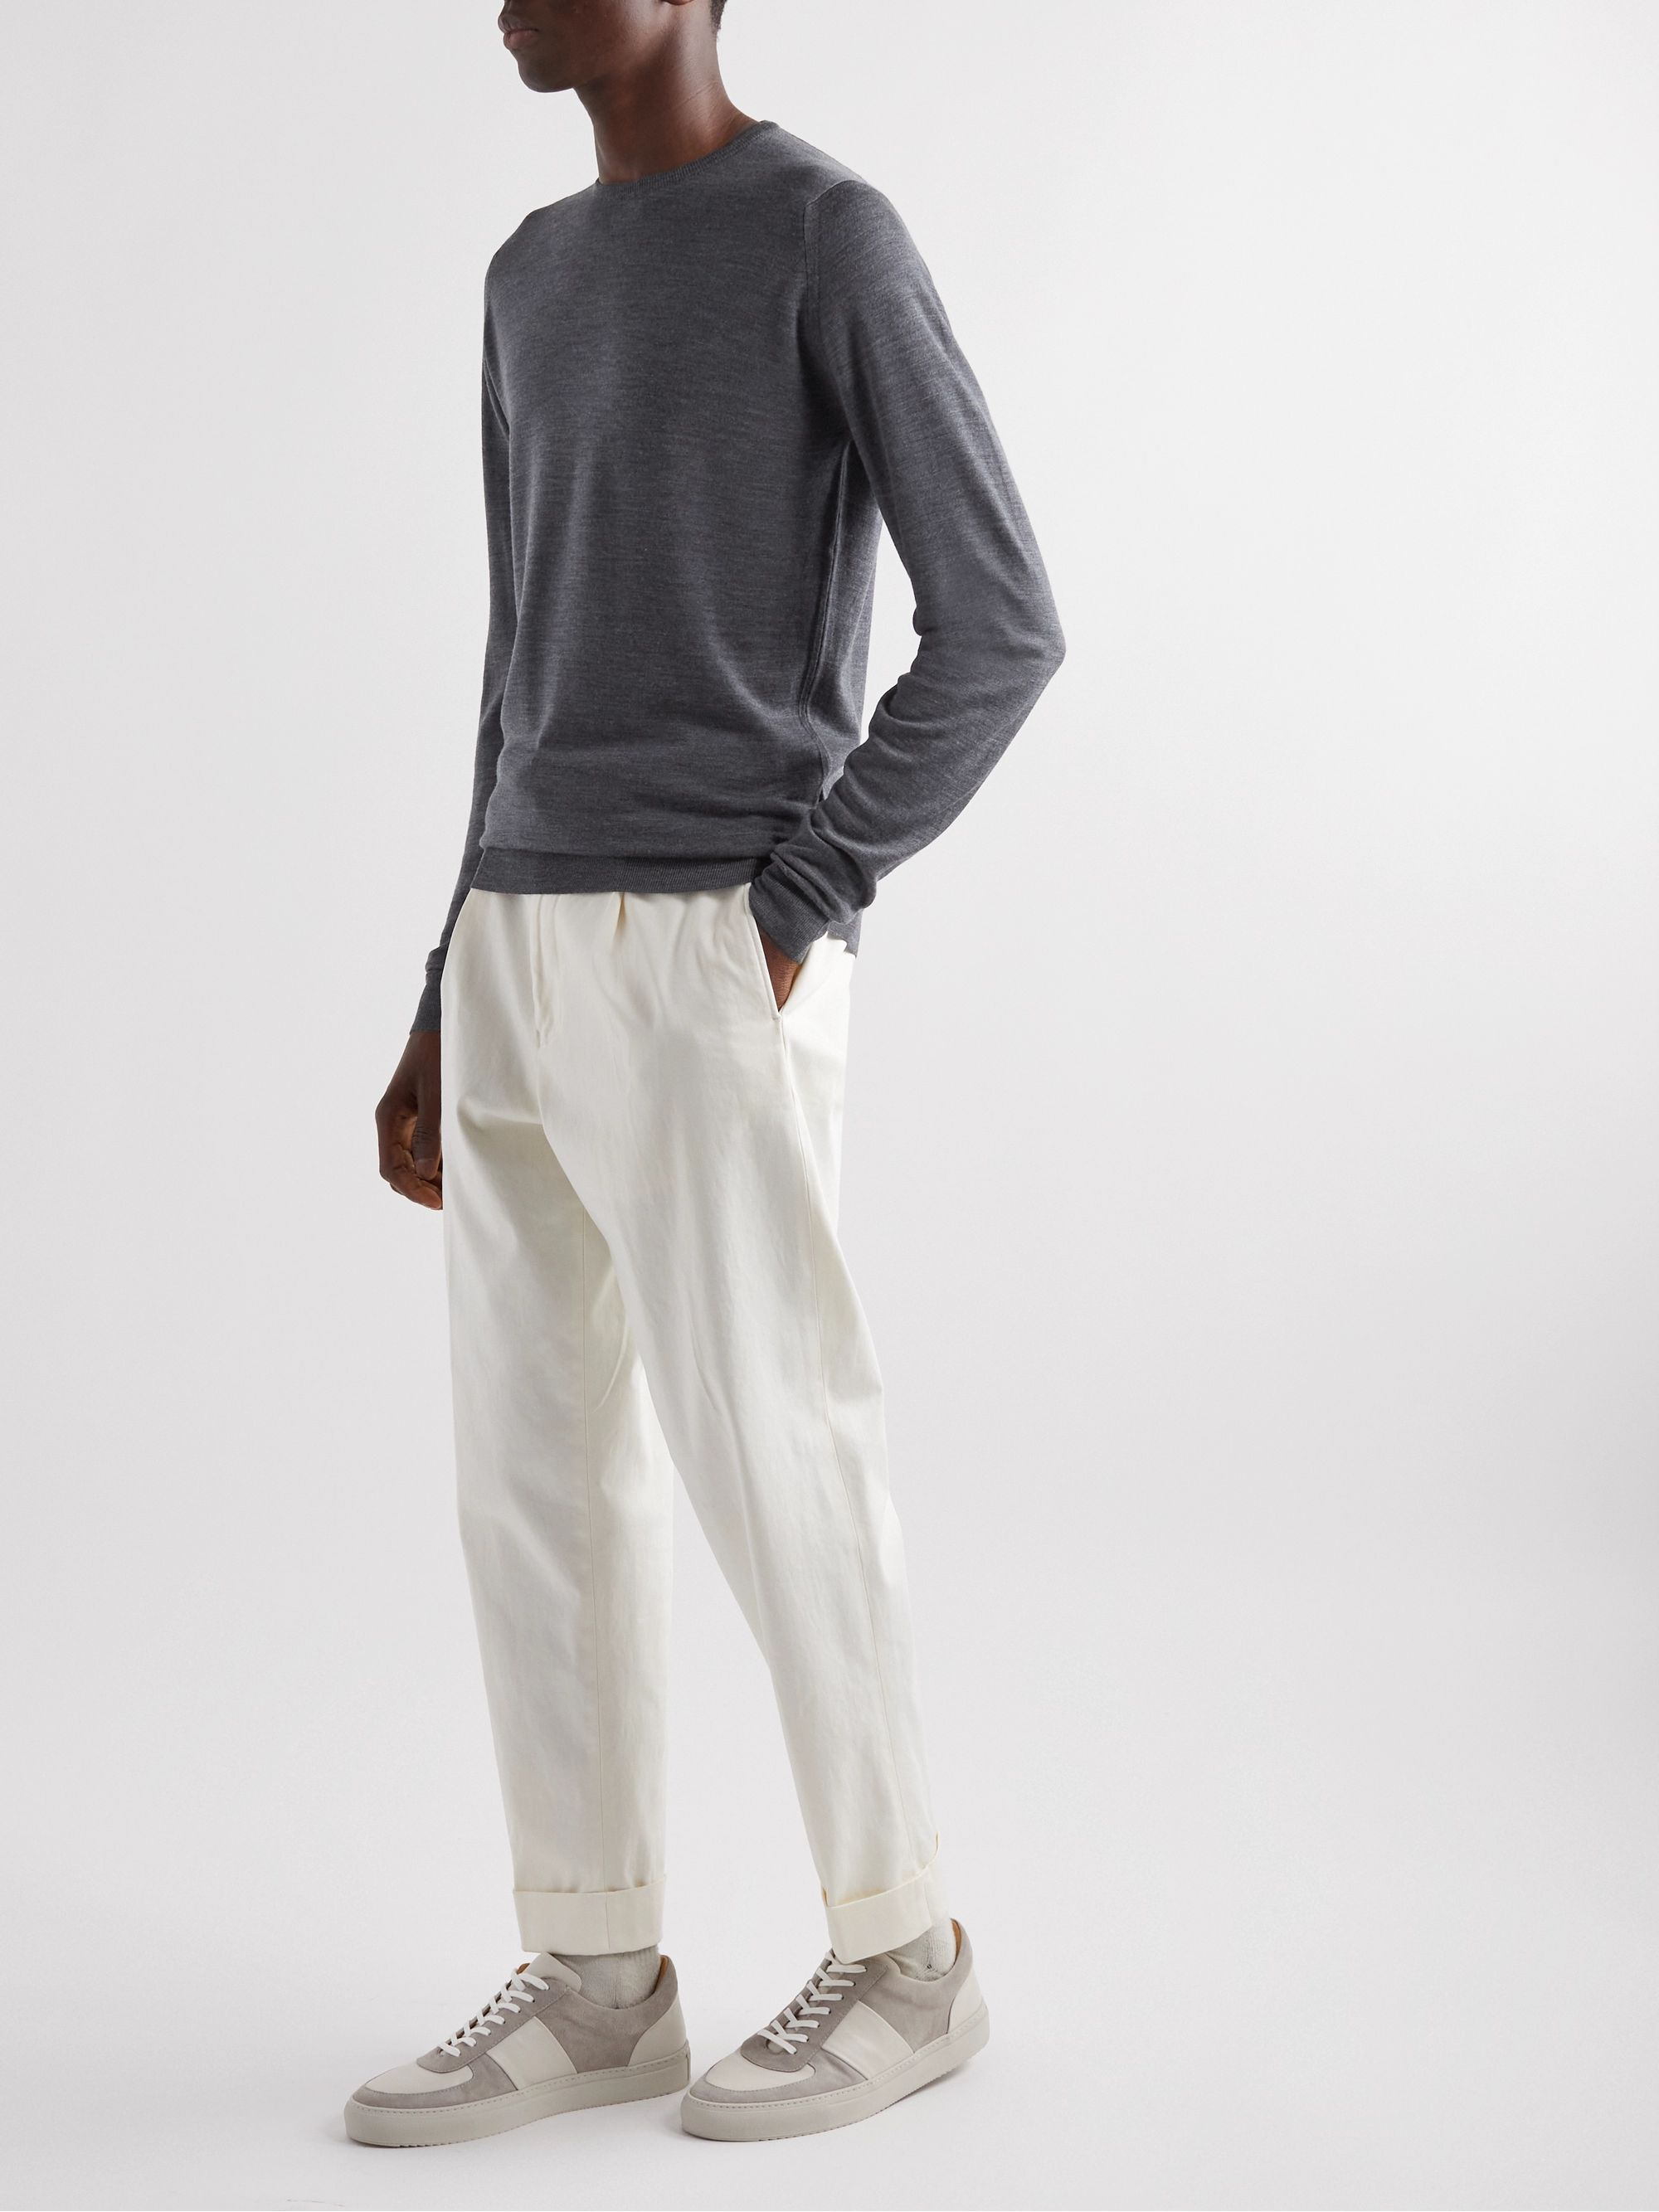 John Smedley Lundy Slim-Fit Mélange Merino Wool Sweater